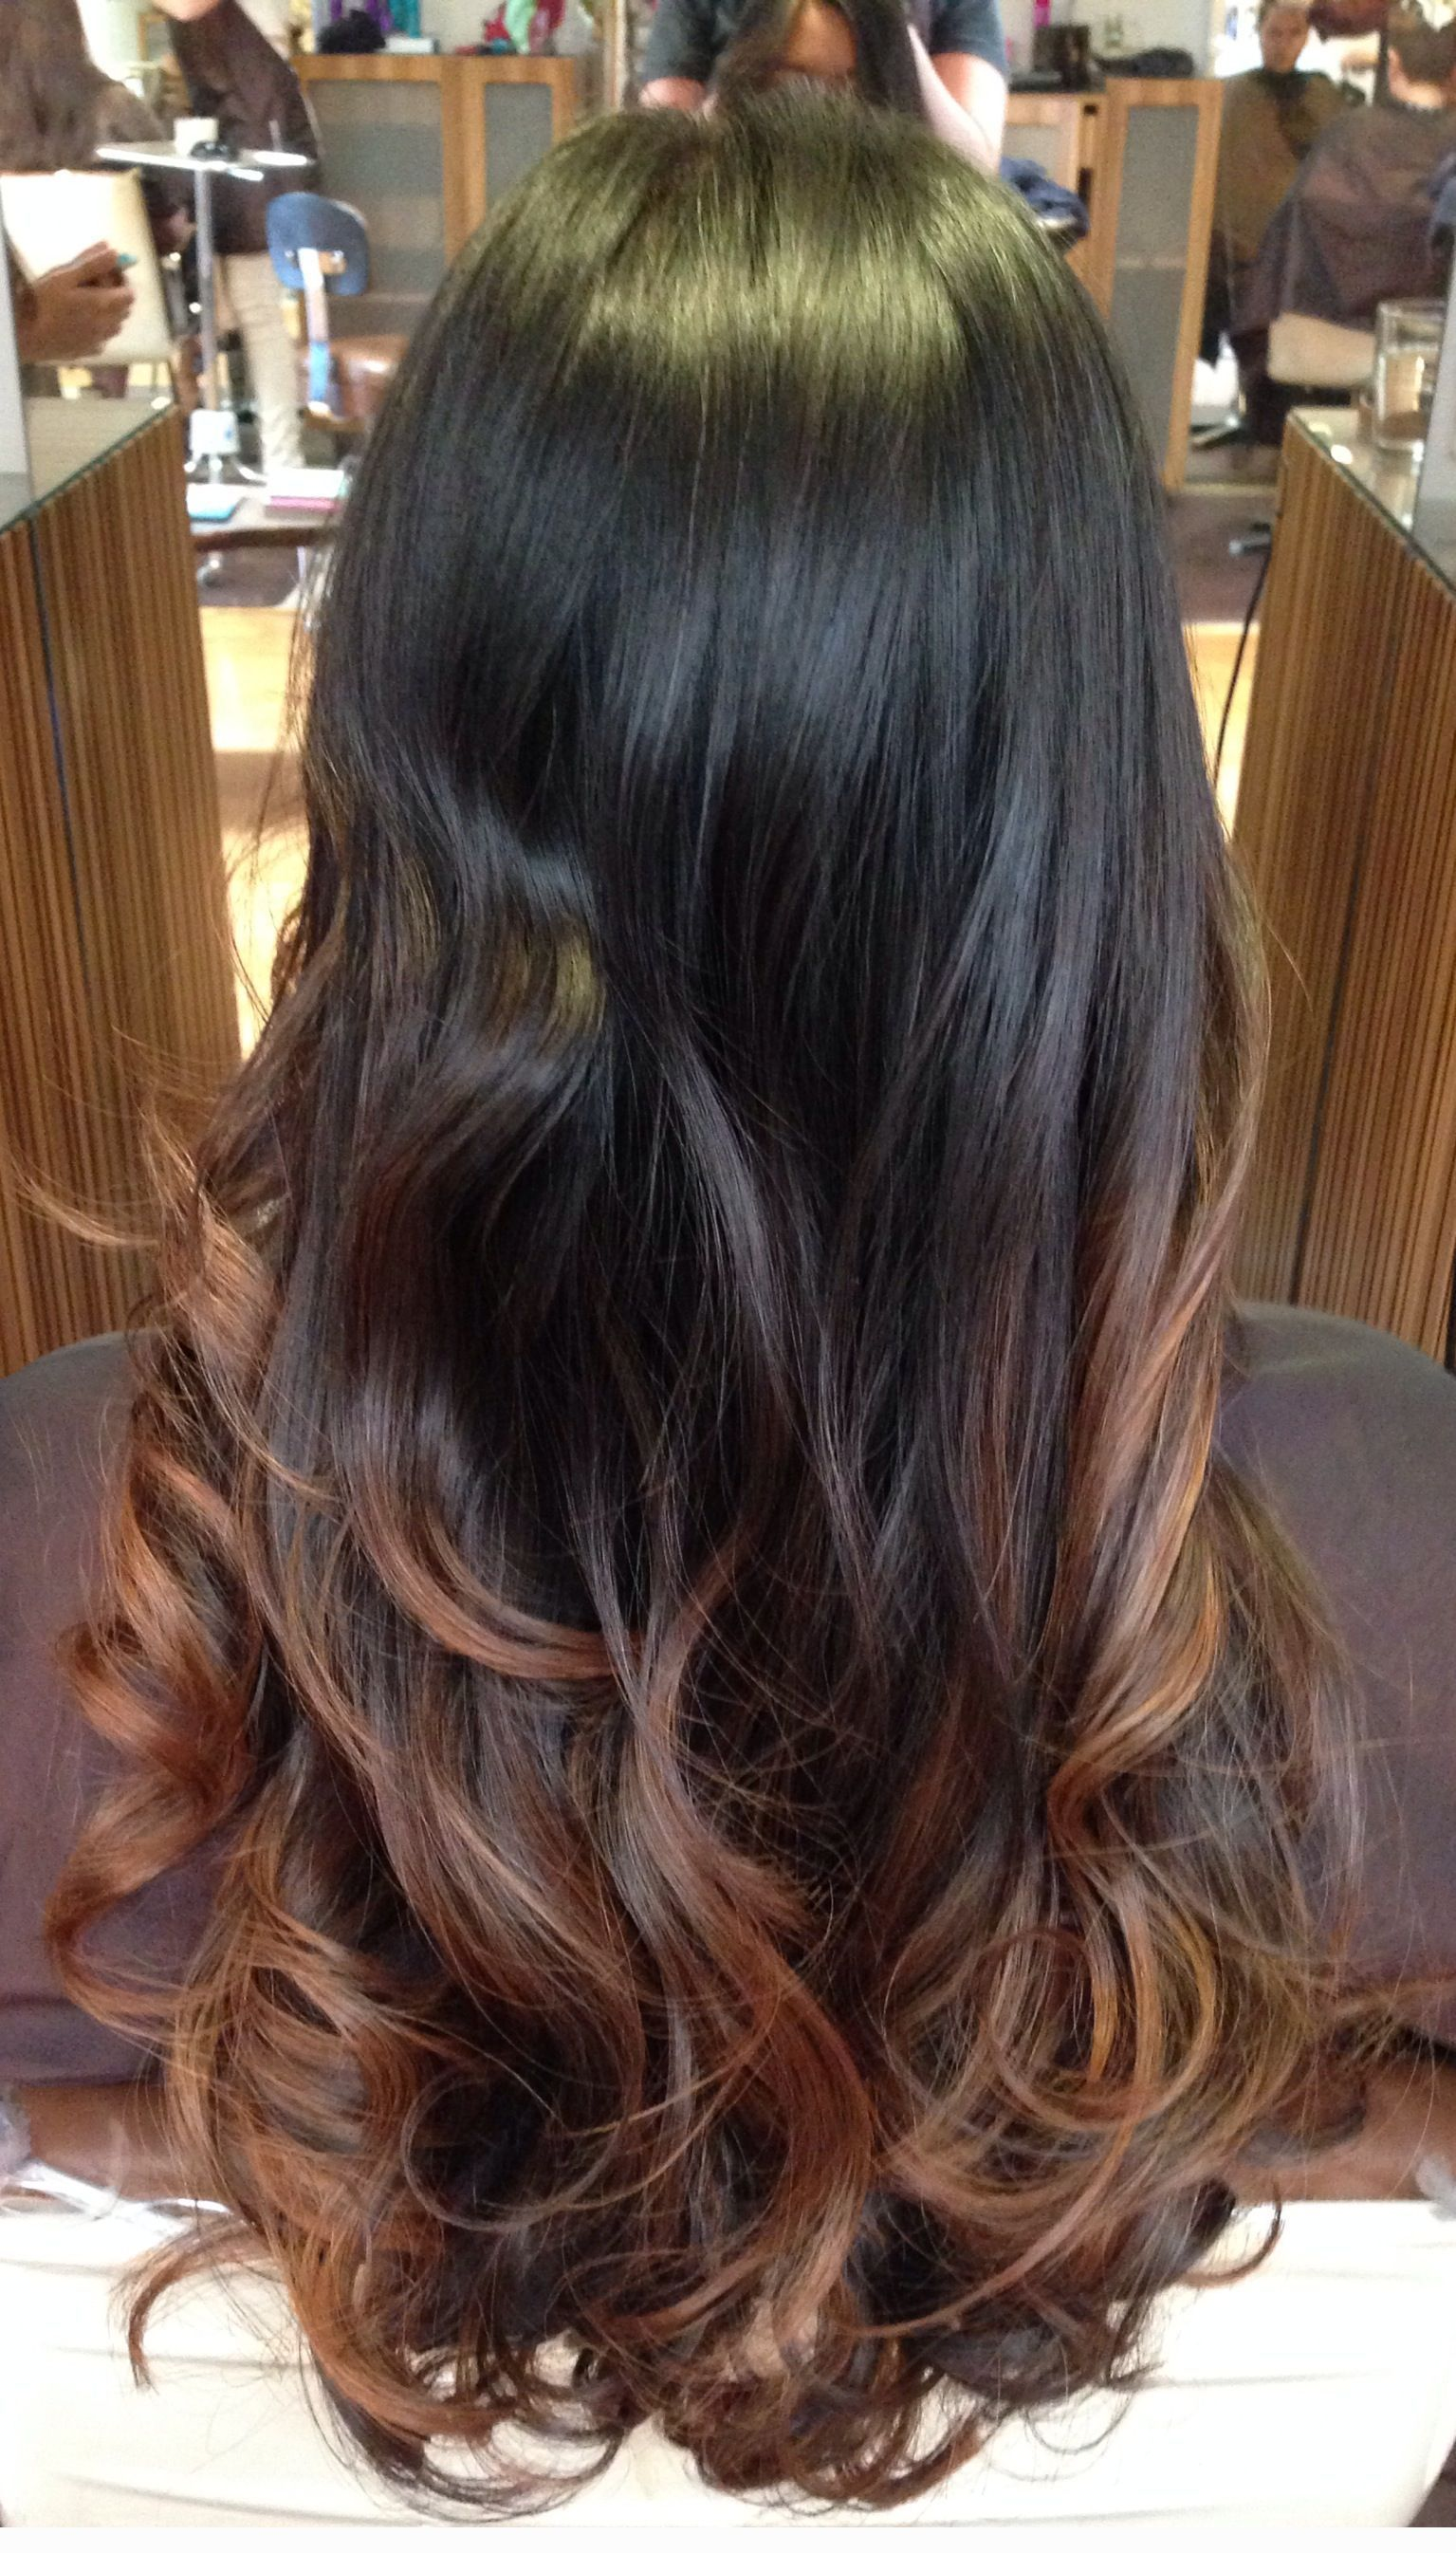 Hairstyle Ideas Long Hair Hairstyle Ideas Highlights Hairstyle Ideas For School Hairstyle Ideas Bridal Hairstyl In 2020 Balayage Hair Hair Styles Brown Ombre Hair